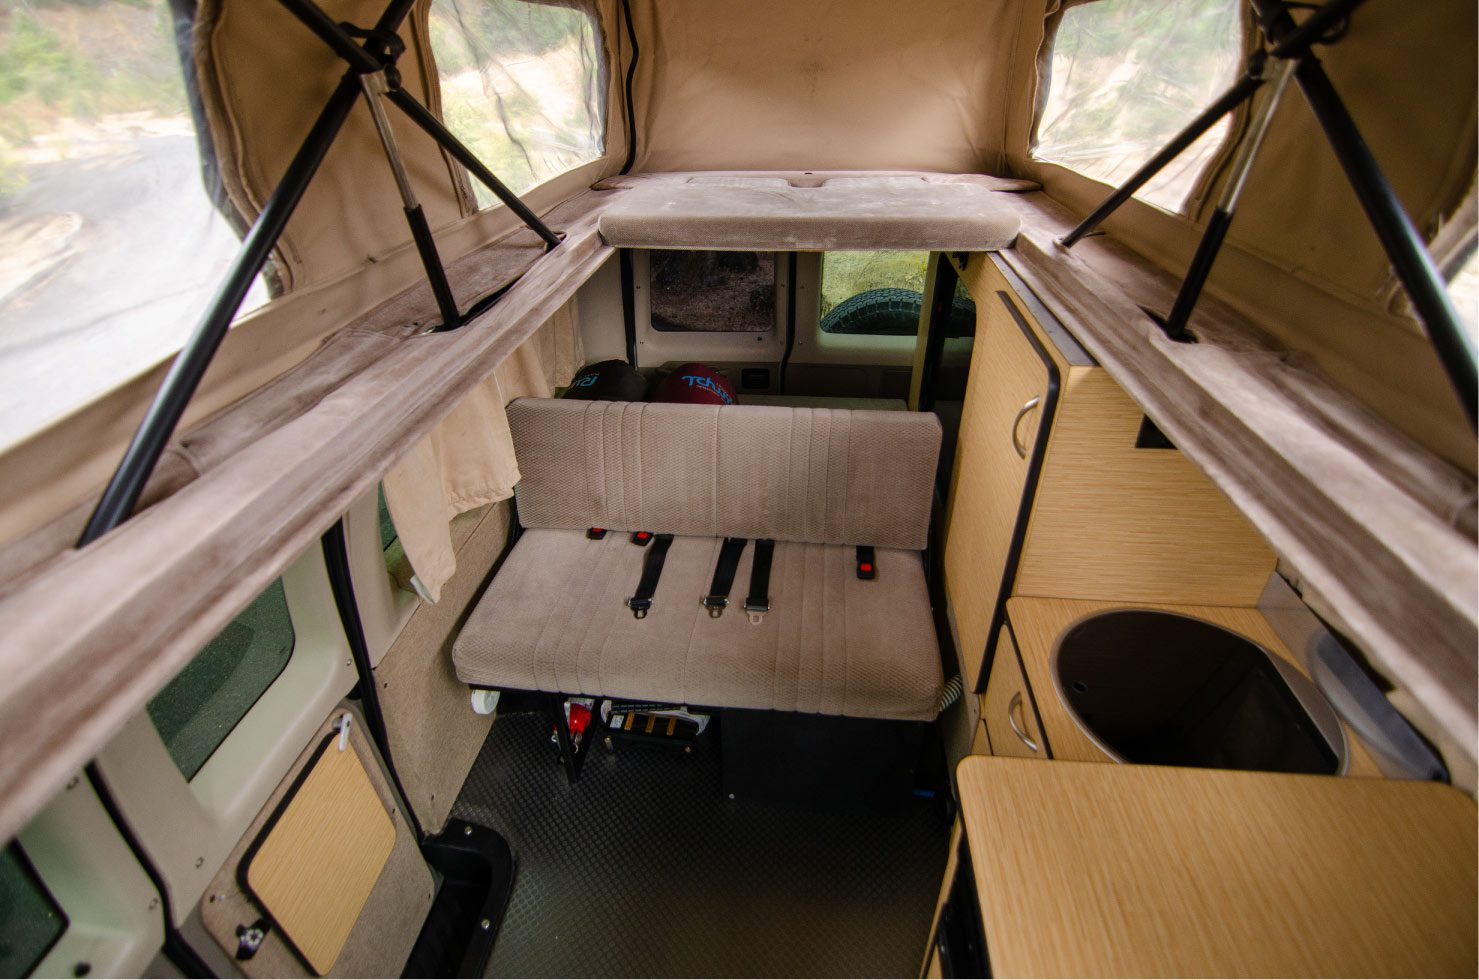 Interior Sportsmobile penthouse and lower bed on a Van Specialties build inside a Ford E-Series 4x4 Econoline Sportsmobile RB50 Layout Campervan conversion for sale